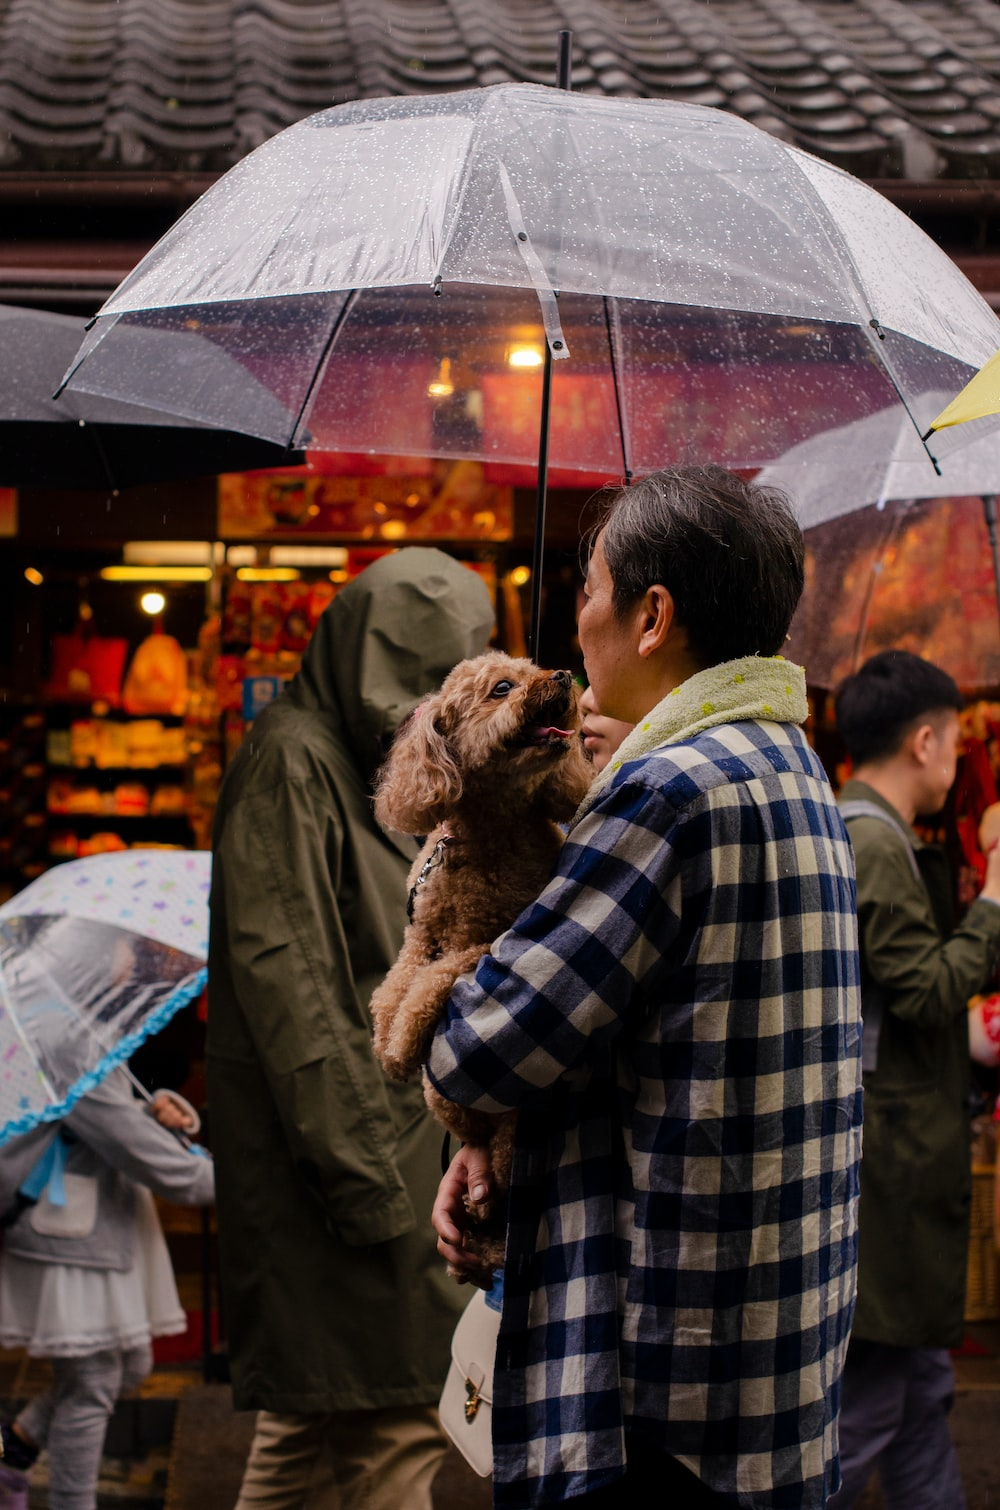 person holding a dog and umbrella during daytime